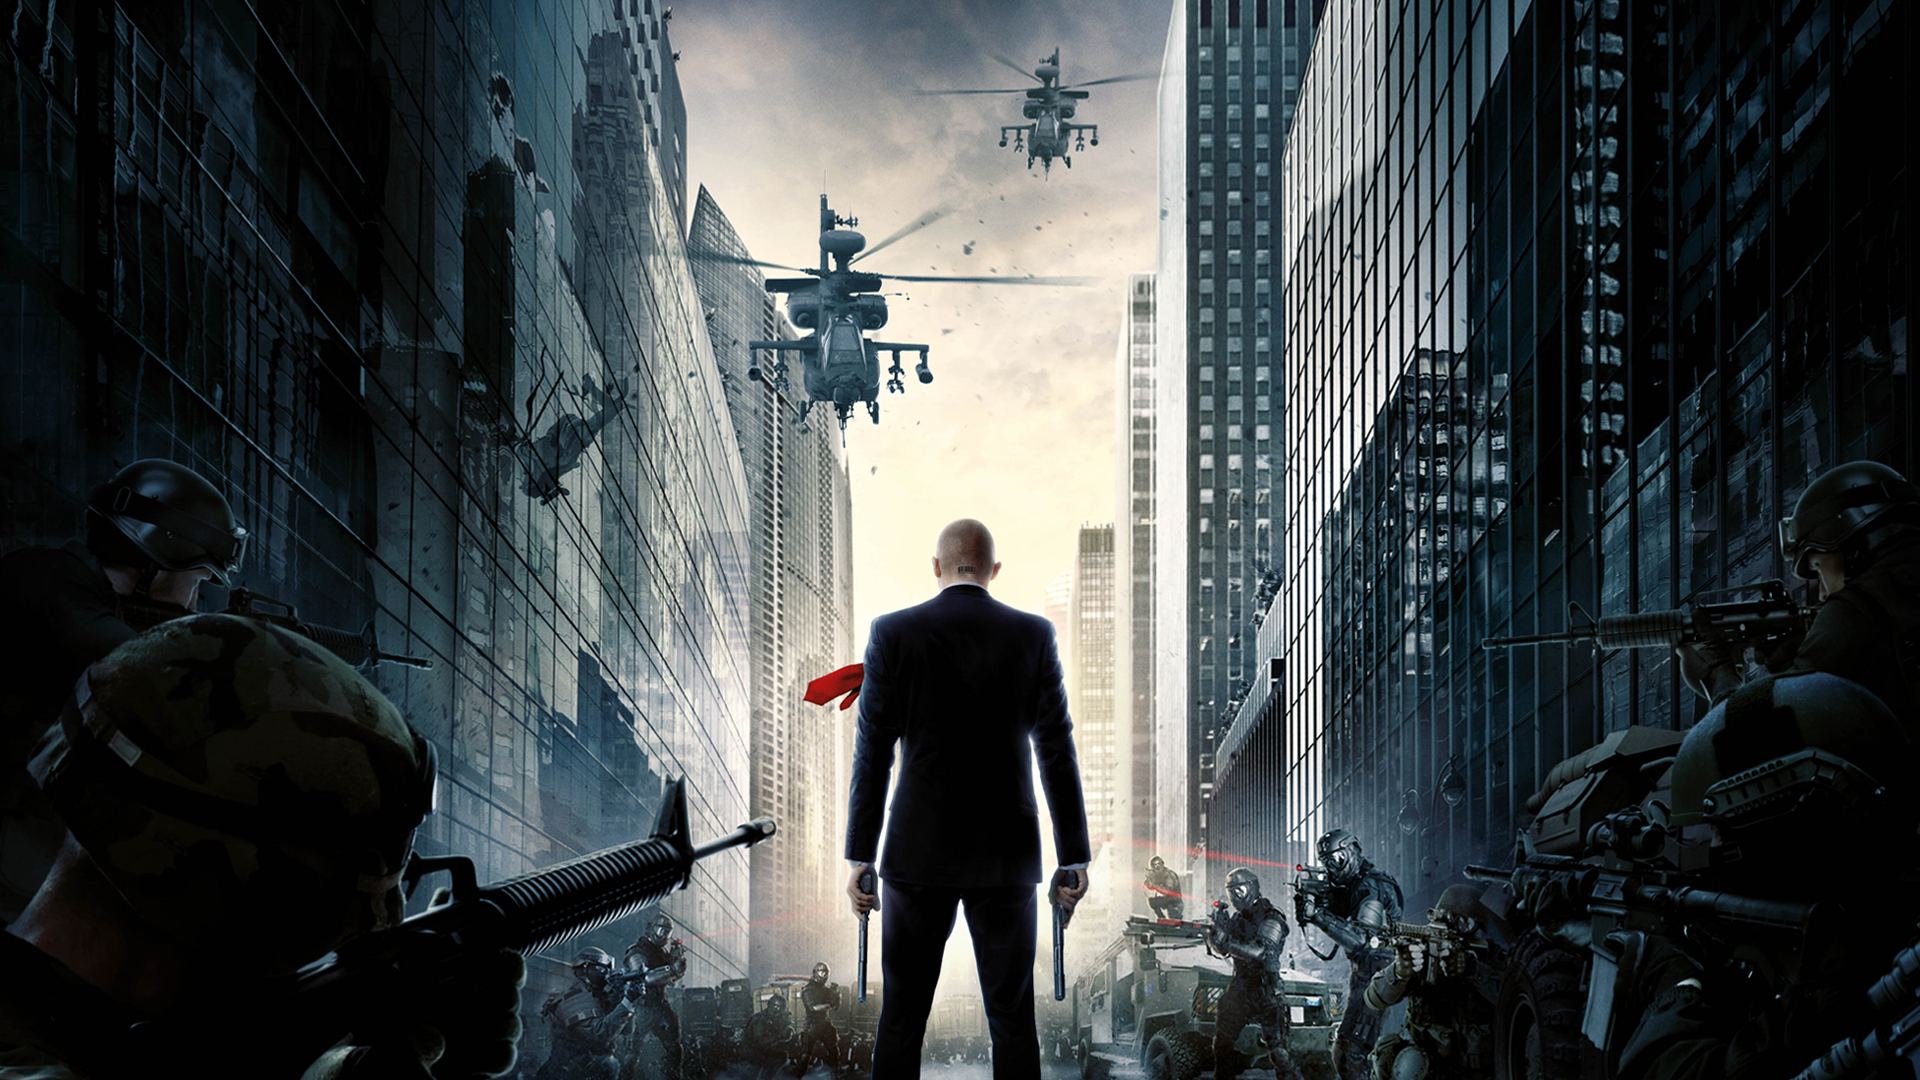 Hitman agent 47 wallpaper 1920x1080 by sachso74 on deviantart - Agent 47 wallpaper ...